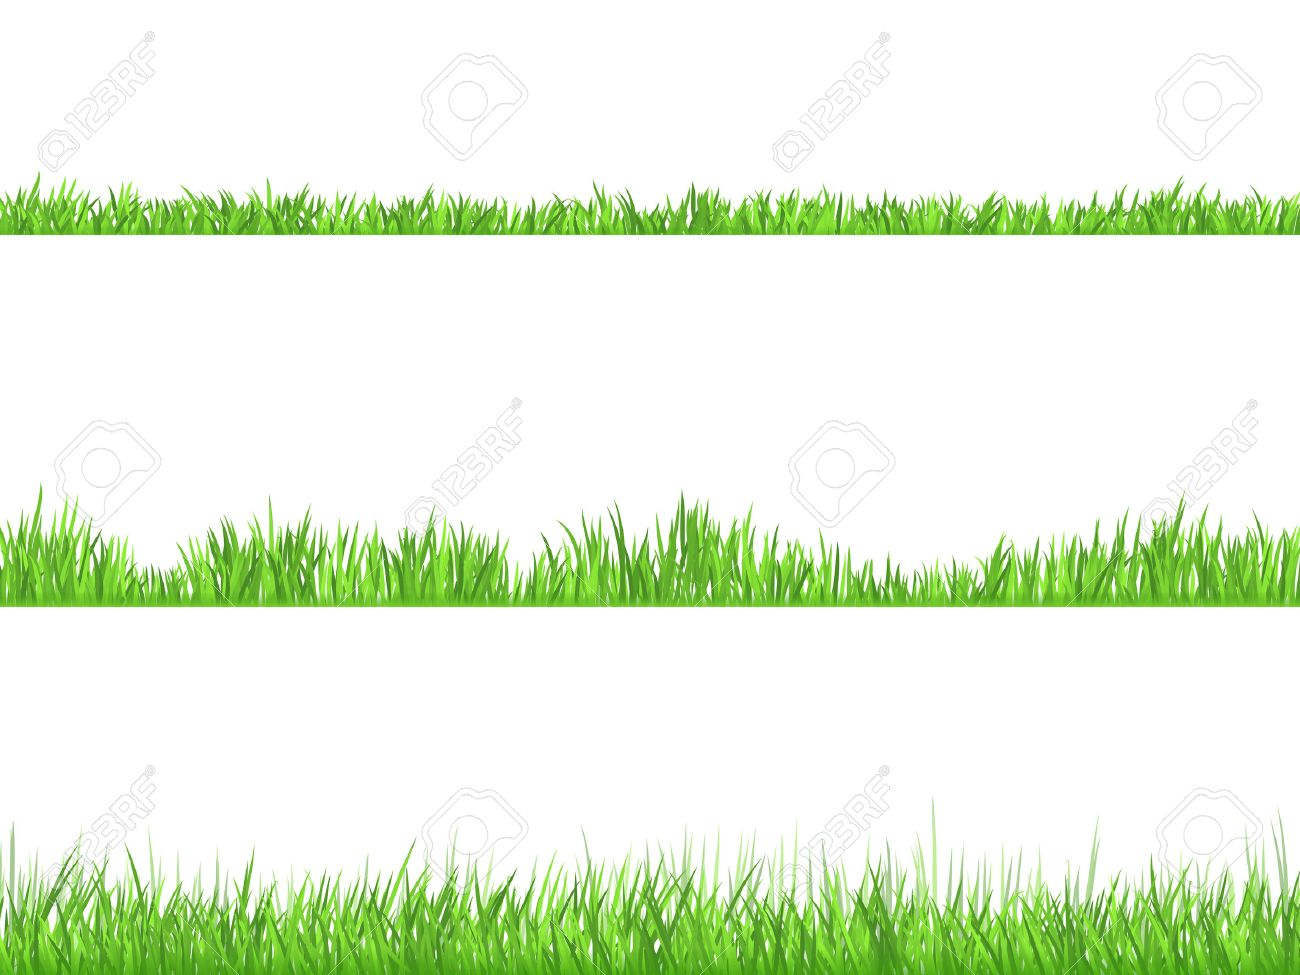 Best looking lawn 3 ideal grass heights for mowing flat horizontal banners set abstract isolated  vector illustration Stock Vector - 51757320